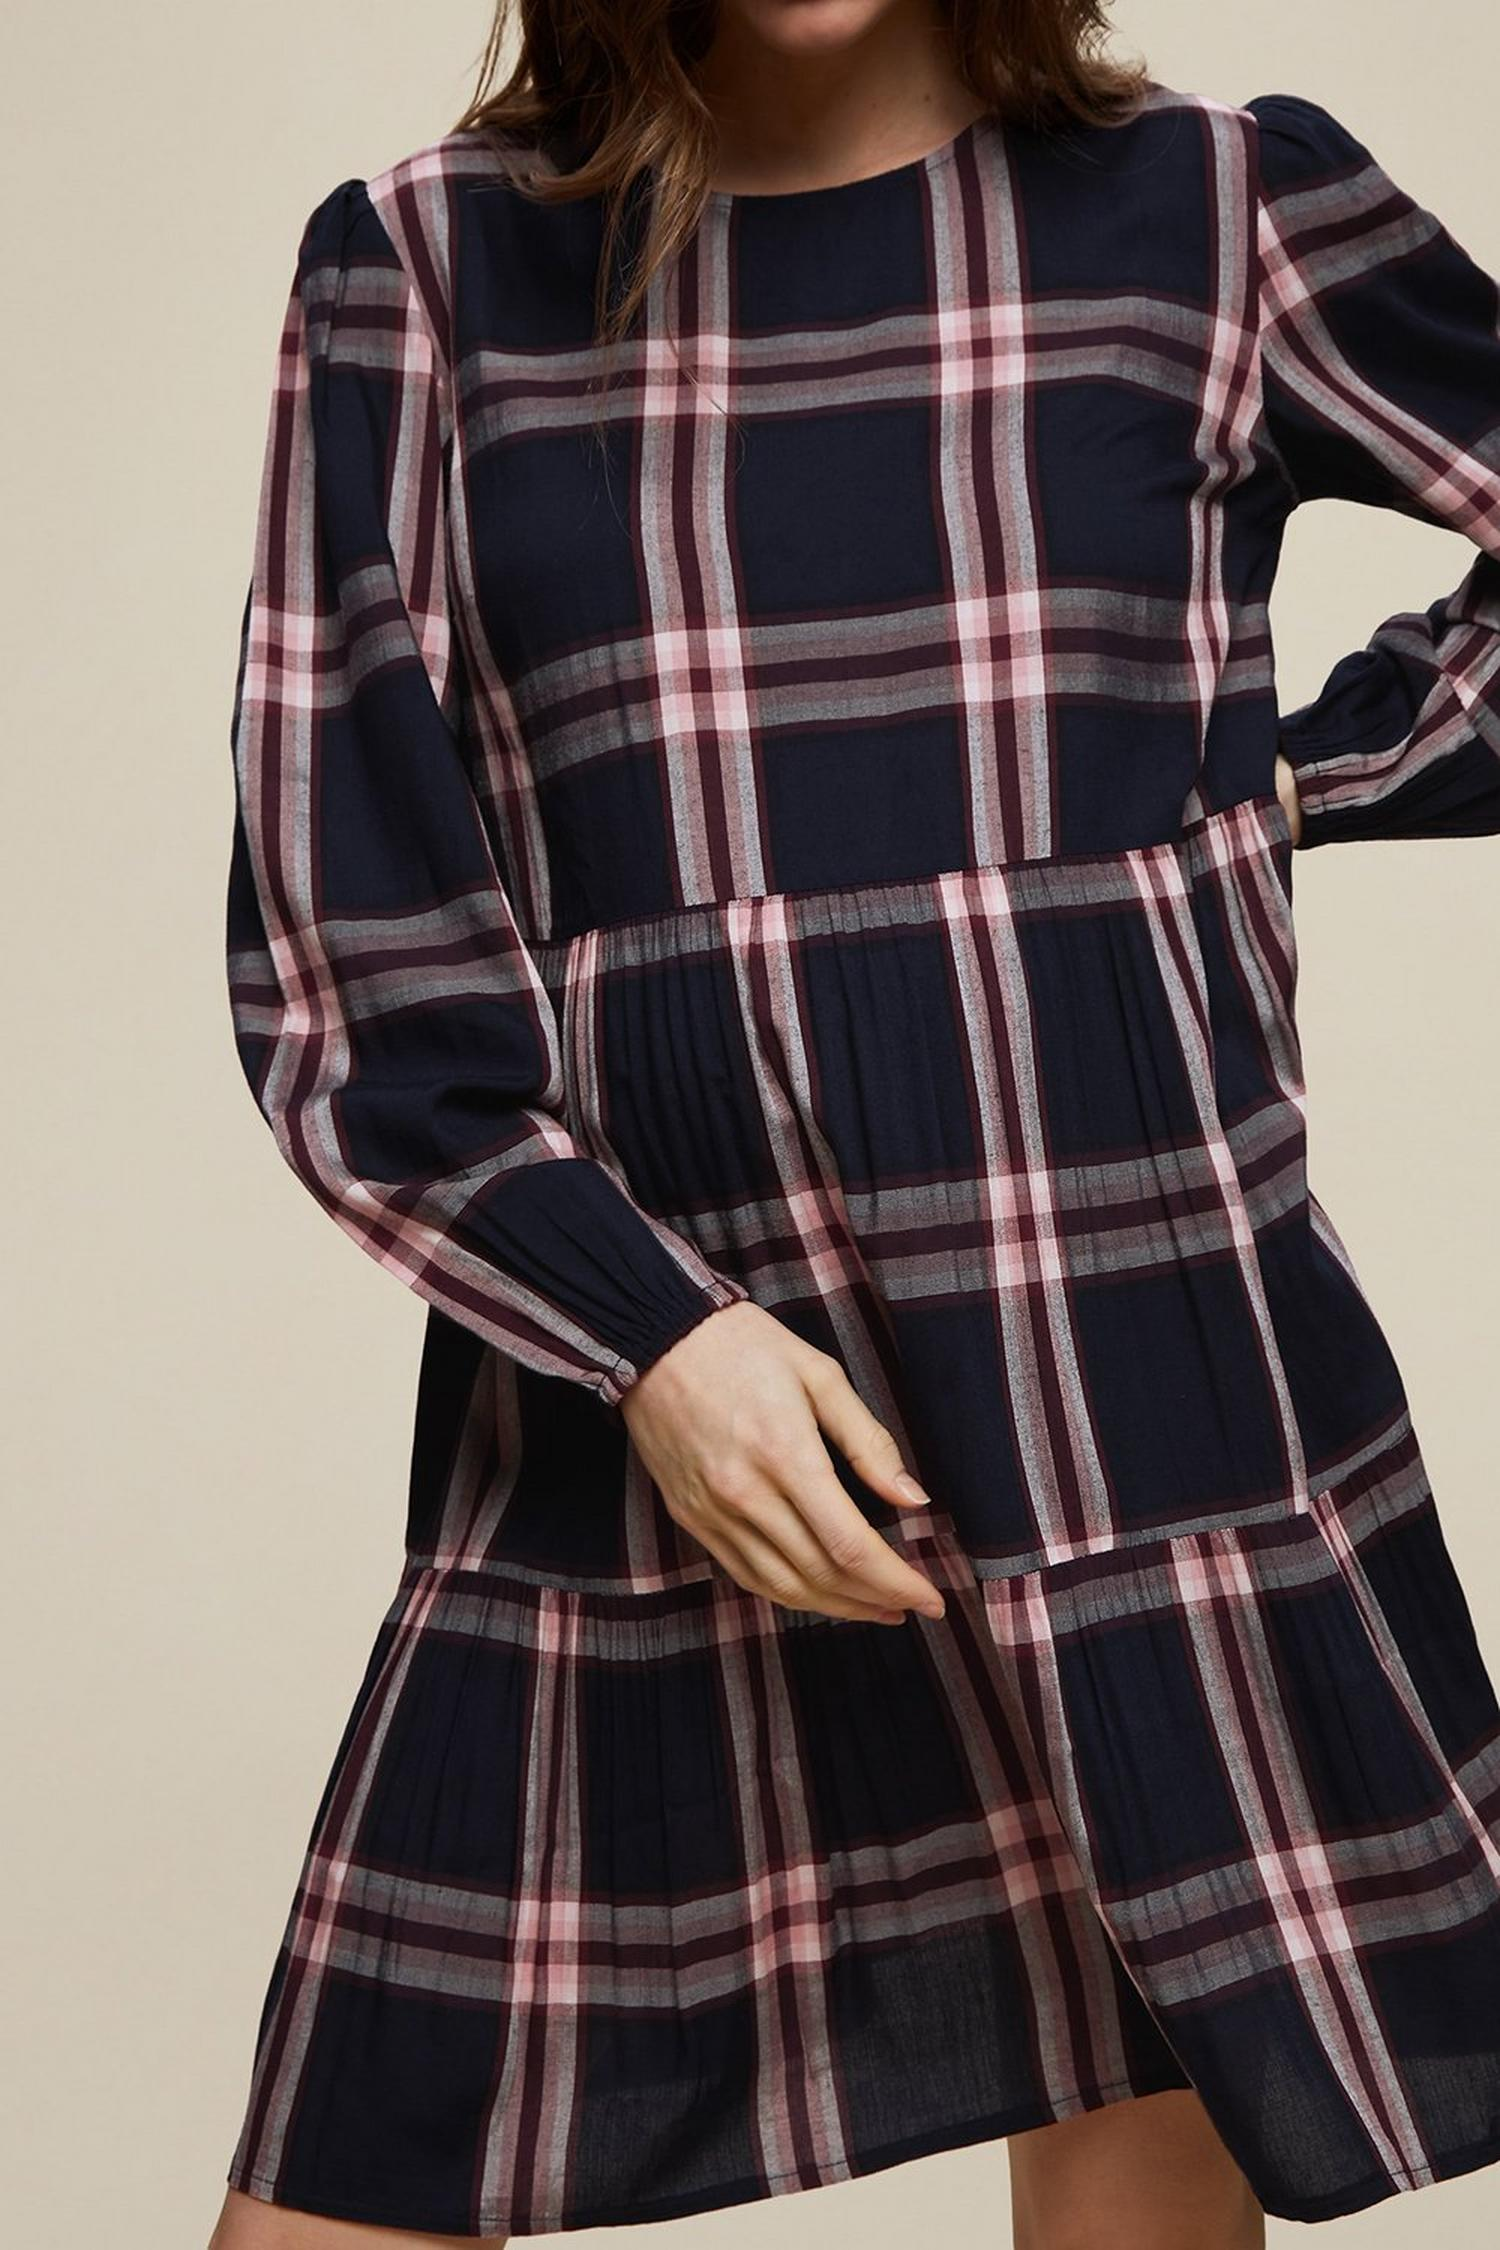 148 Maternity Navy Check Print Smock Dress image number 3